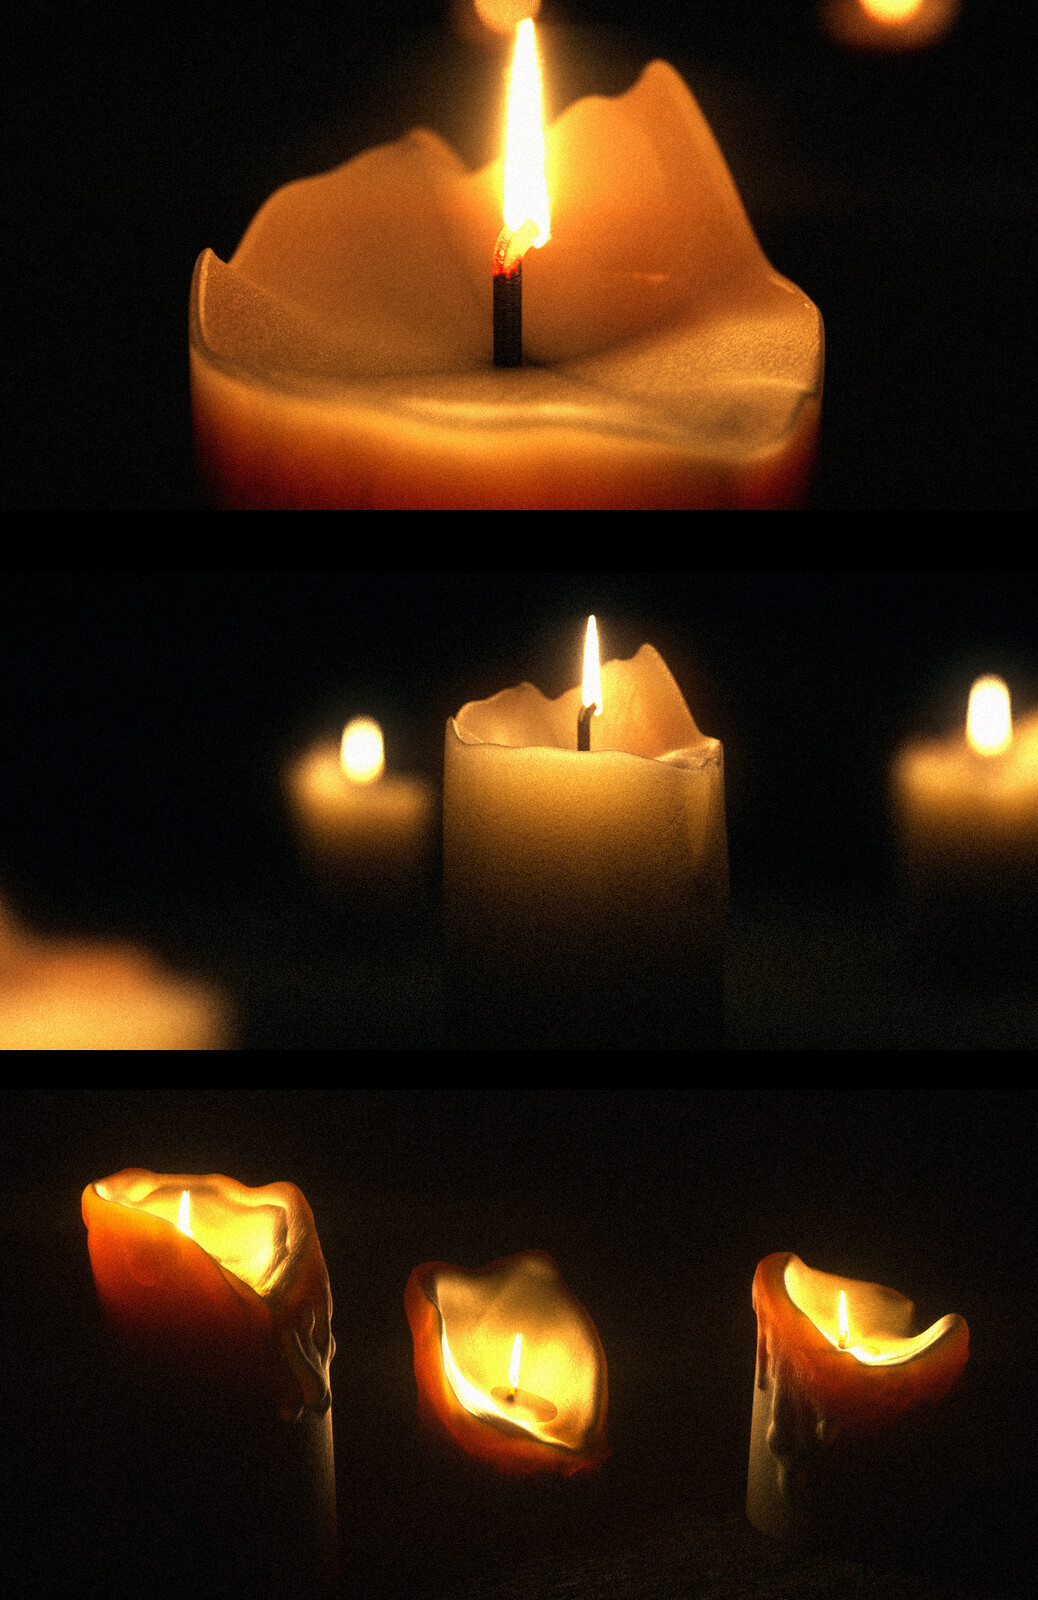 Modelled 4 differents candles for the scene